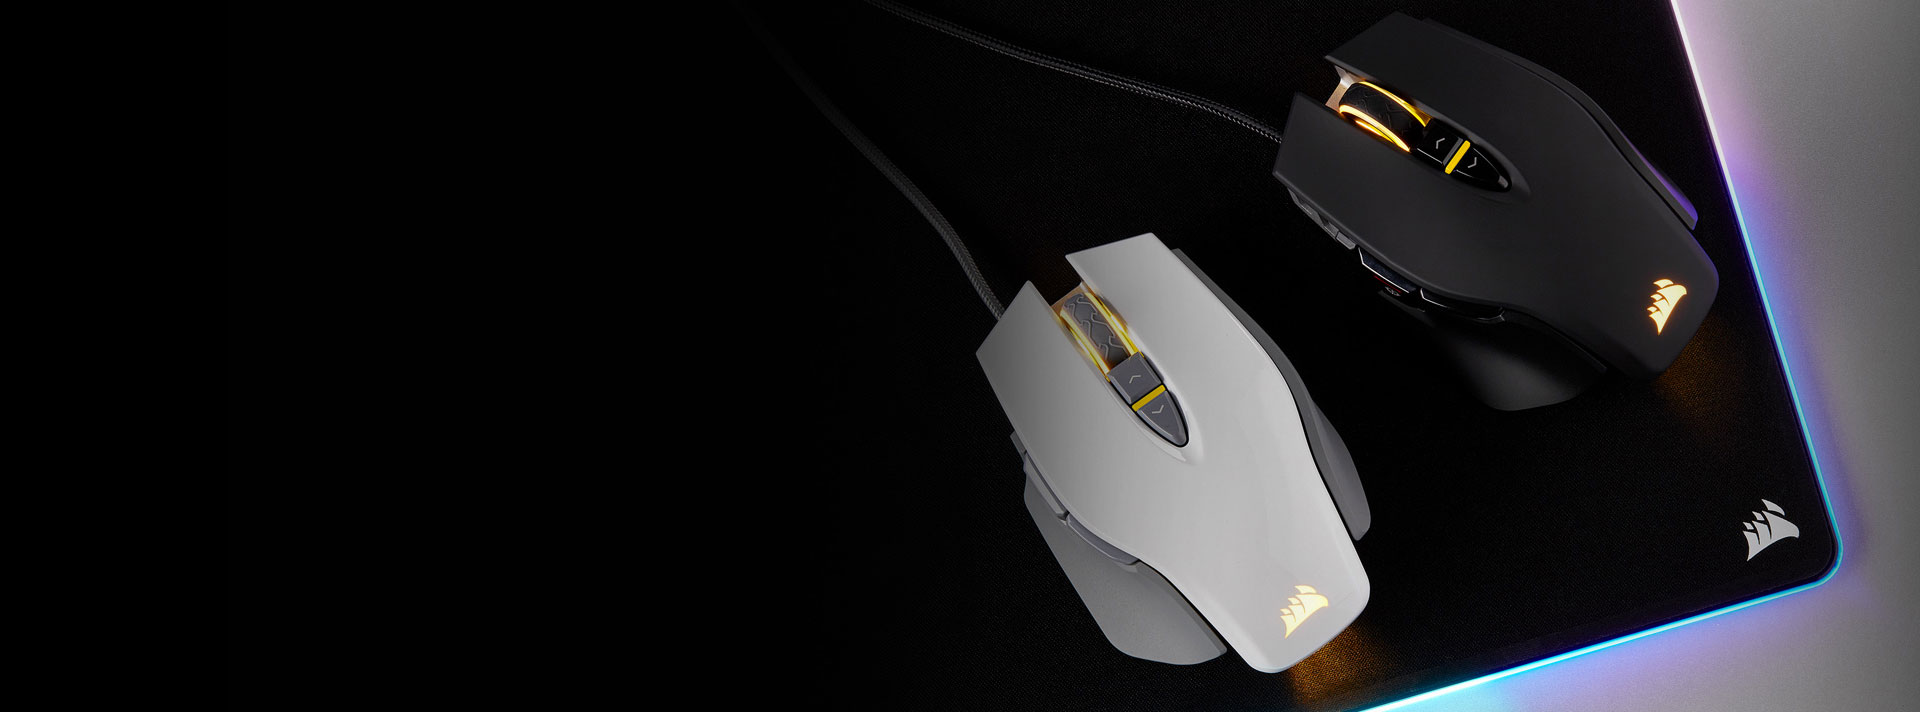 MOUSE GAMING CORSAIR M65 RGB ELITE